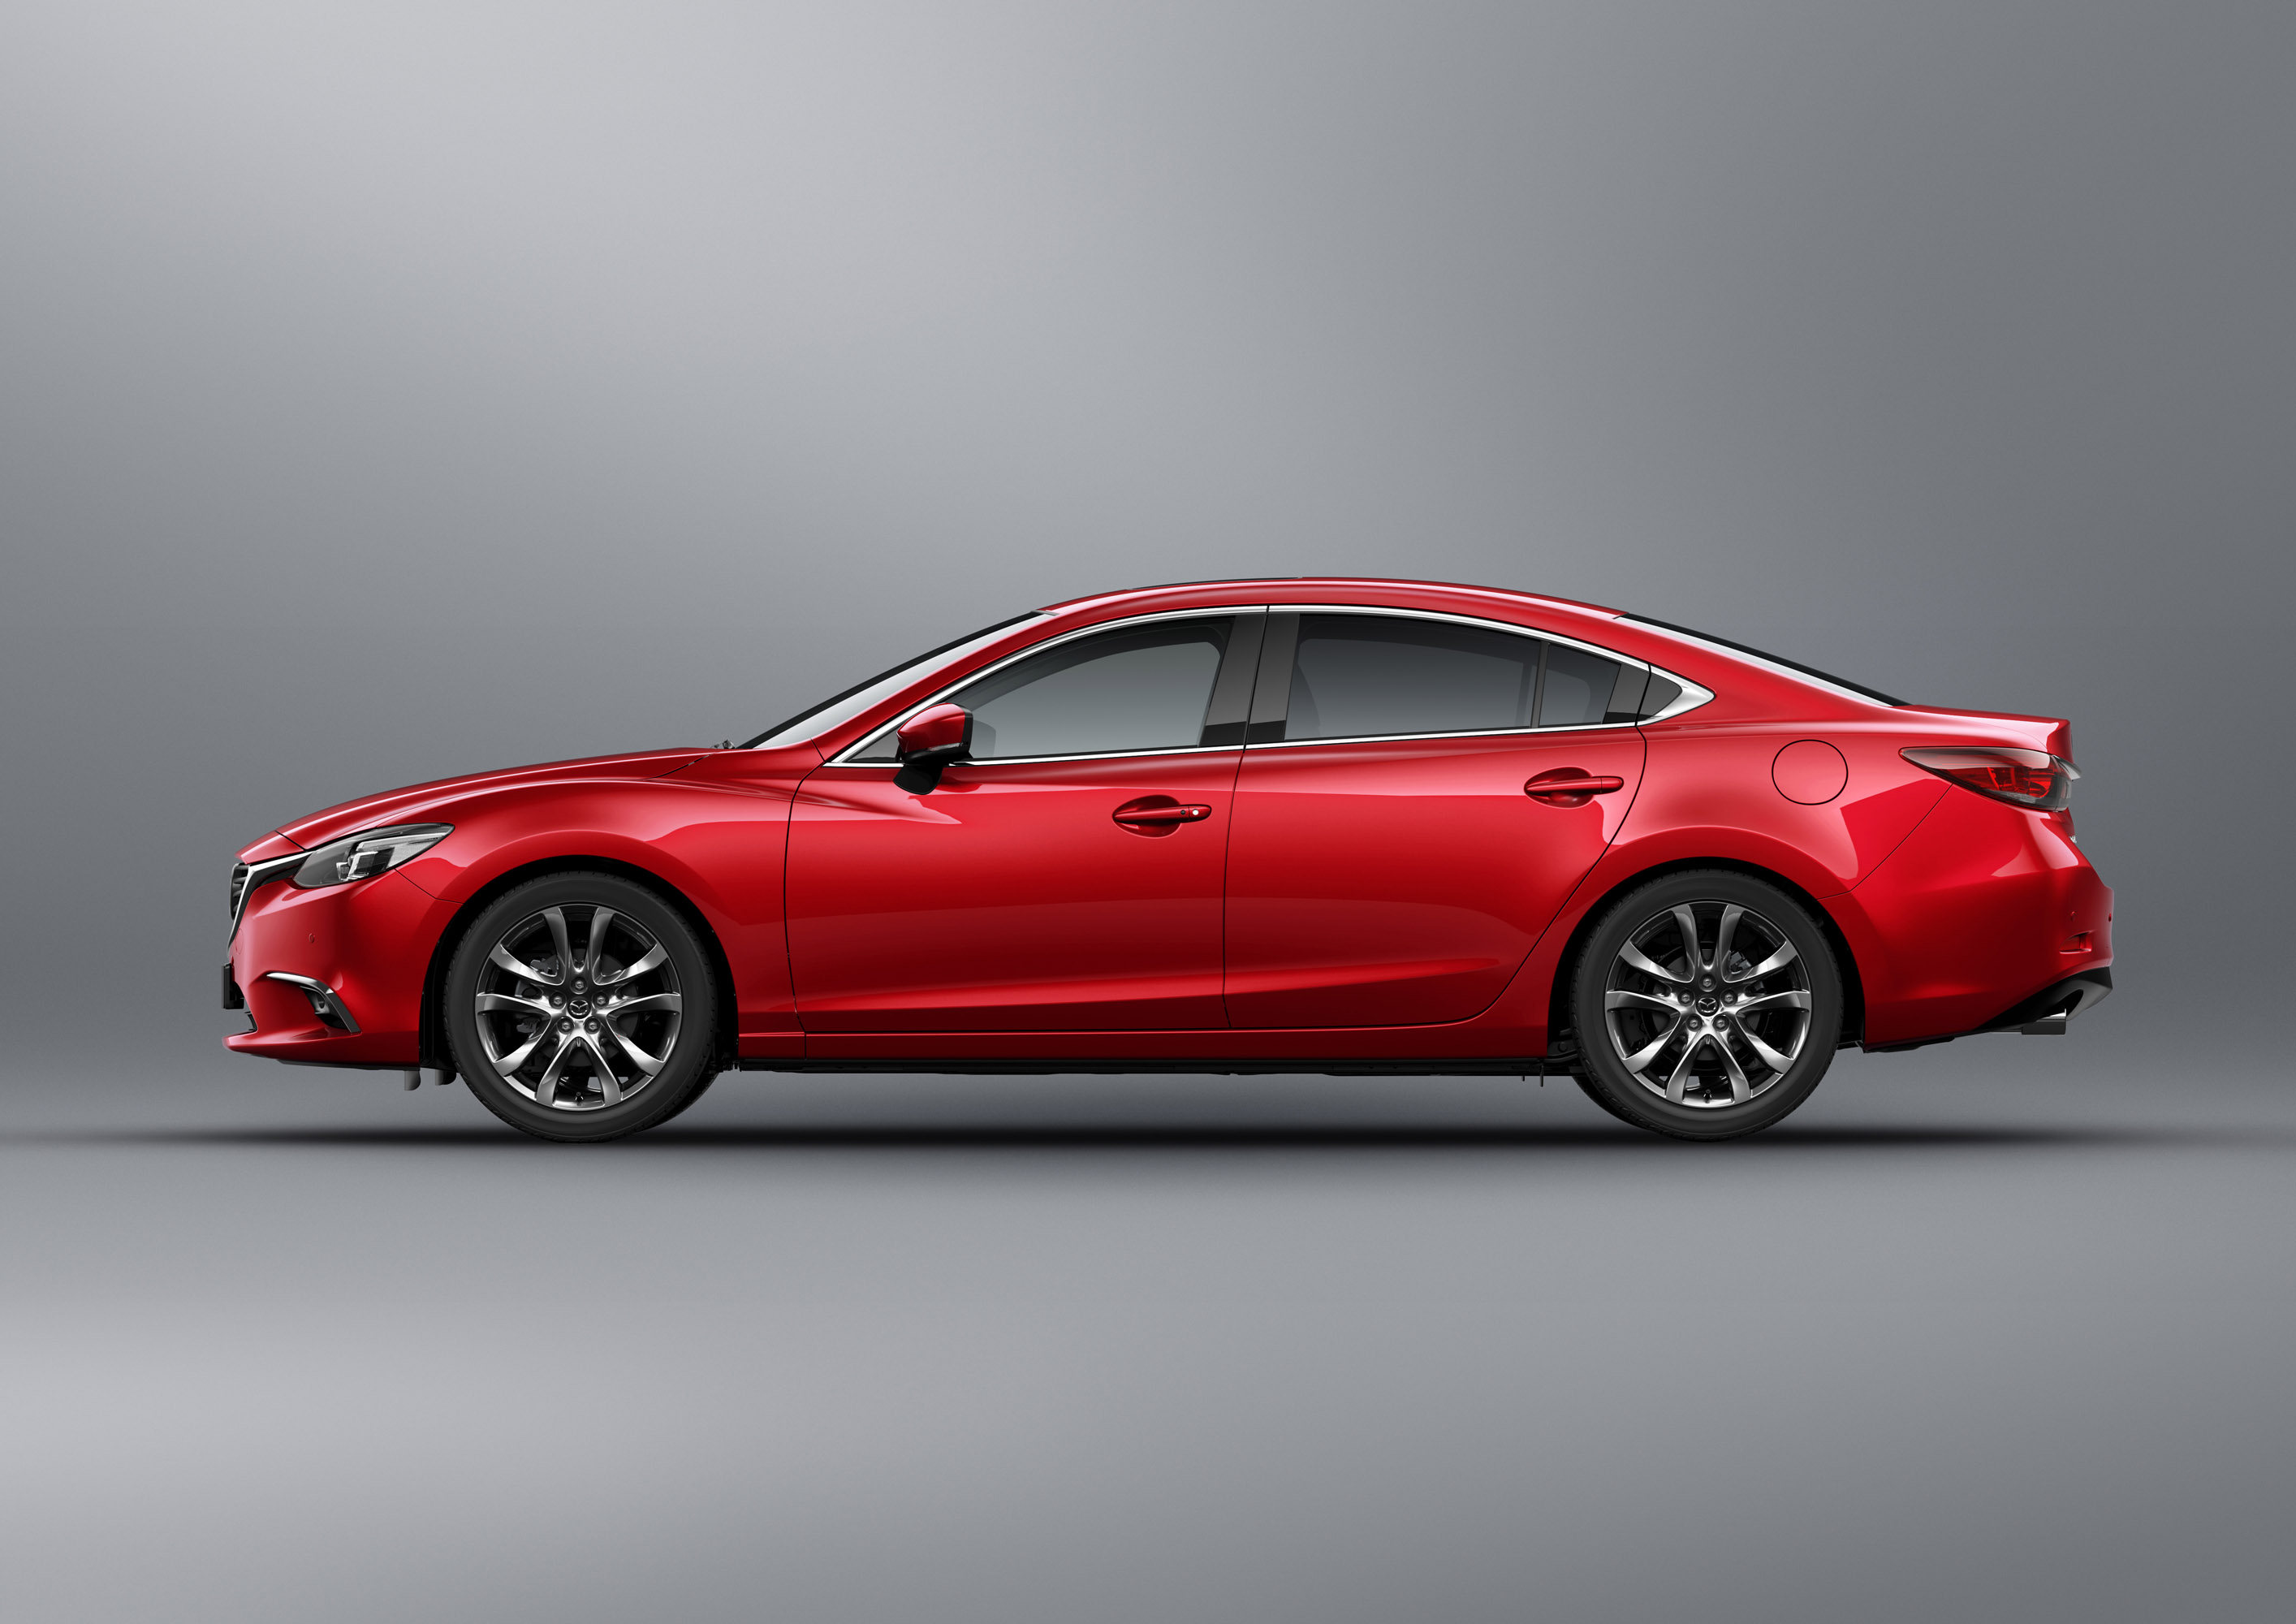 mazda reveals details for the 2017 mazda6 model. Black Bedroom Furniture Sets. Home Design Ideas